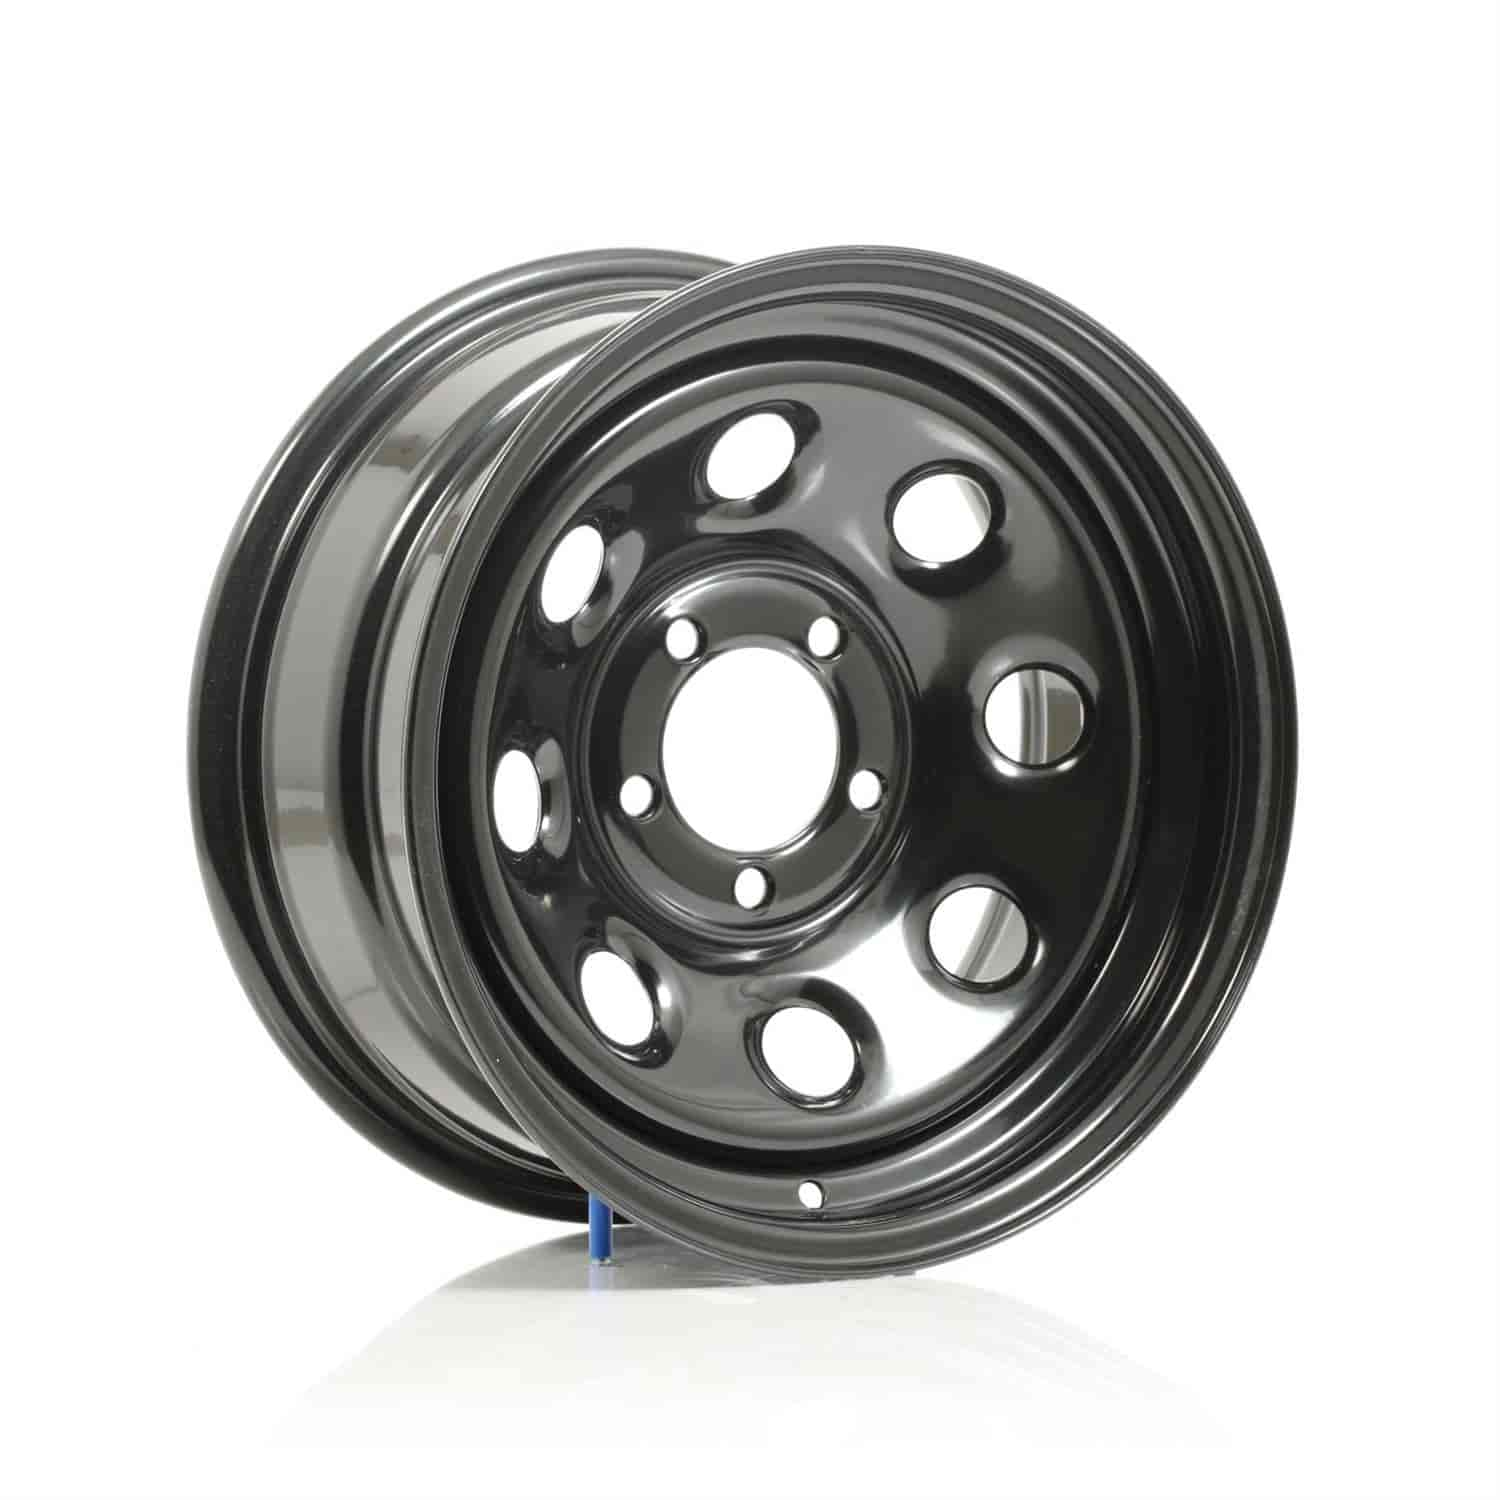 Cragar 3975755 - Cragar Black Soft 8 Wheels